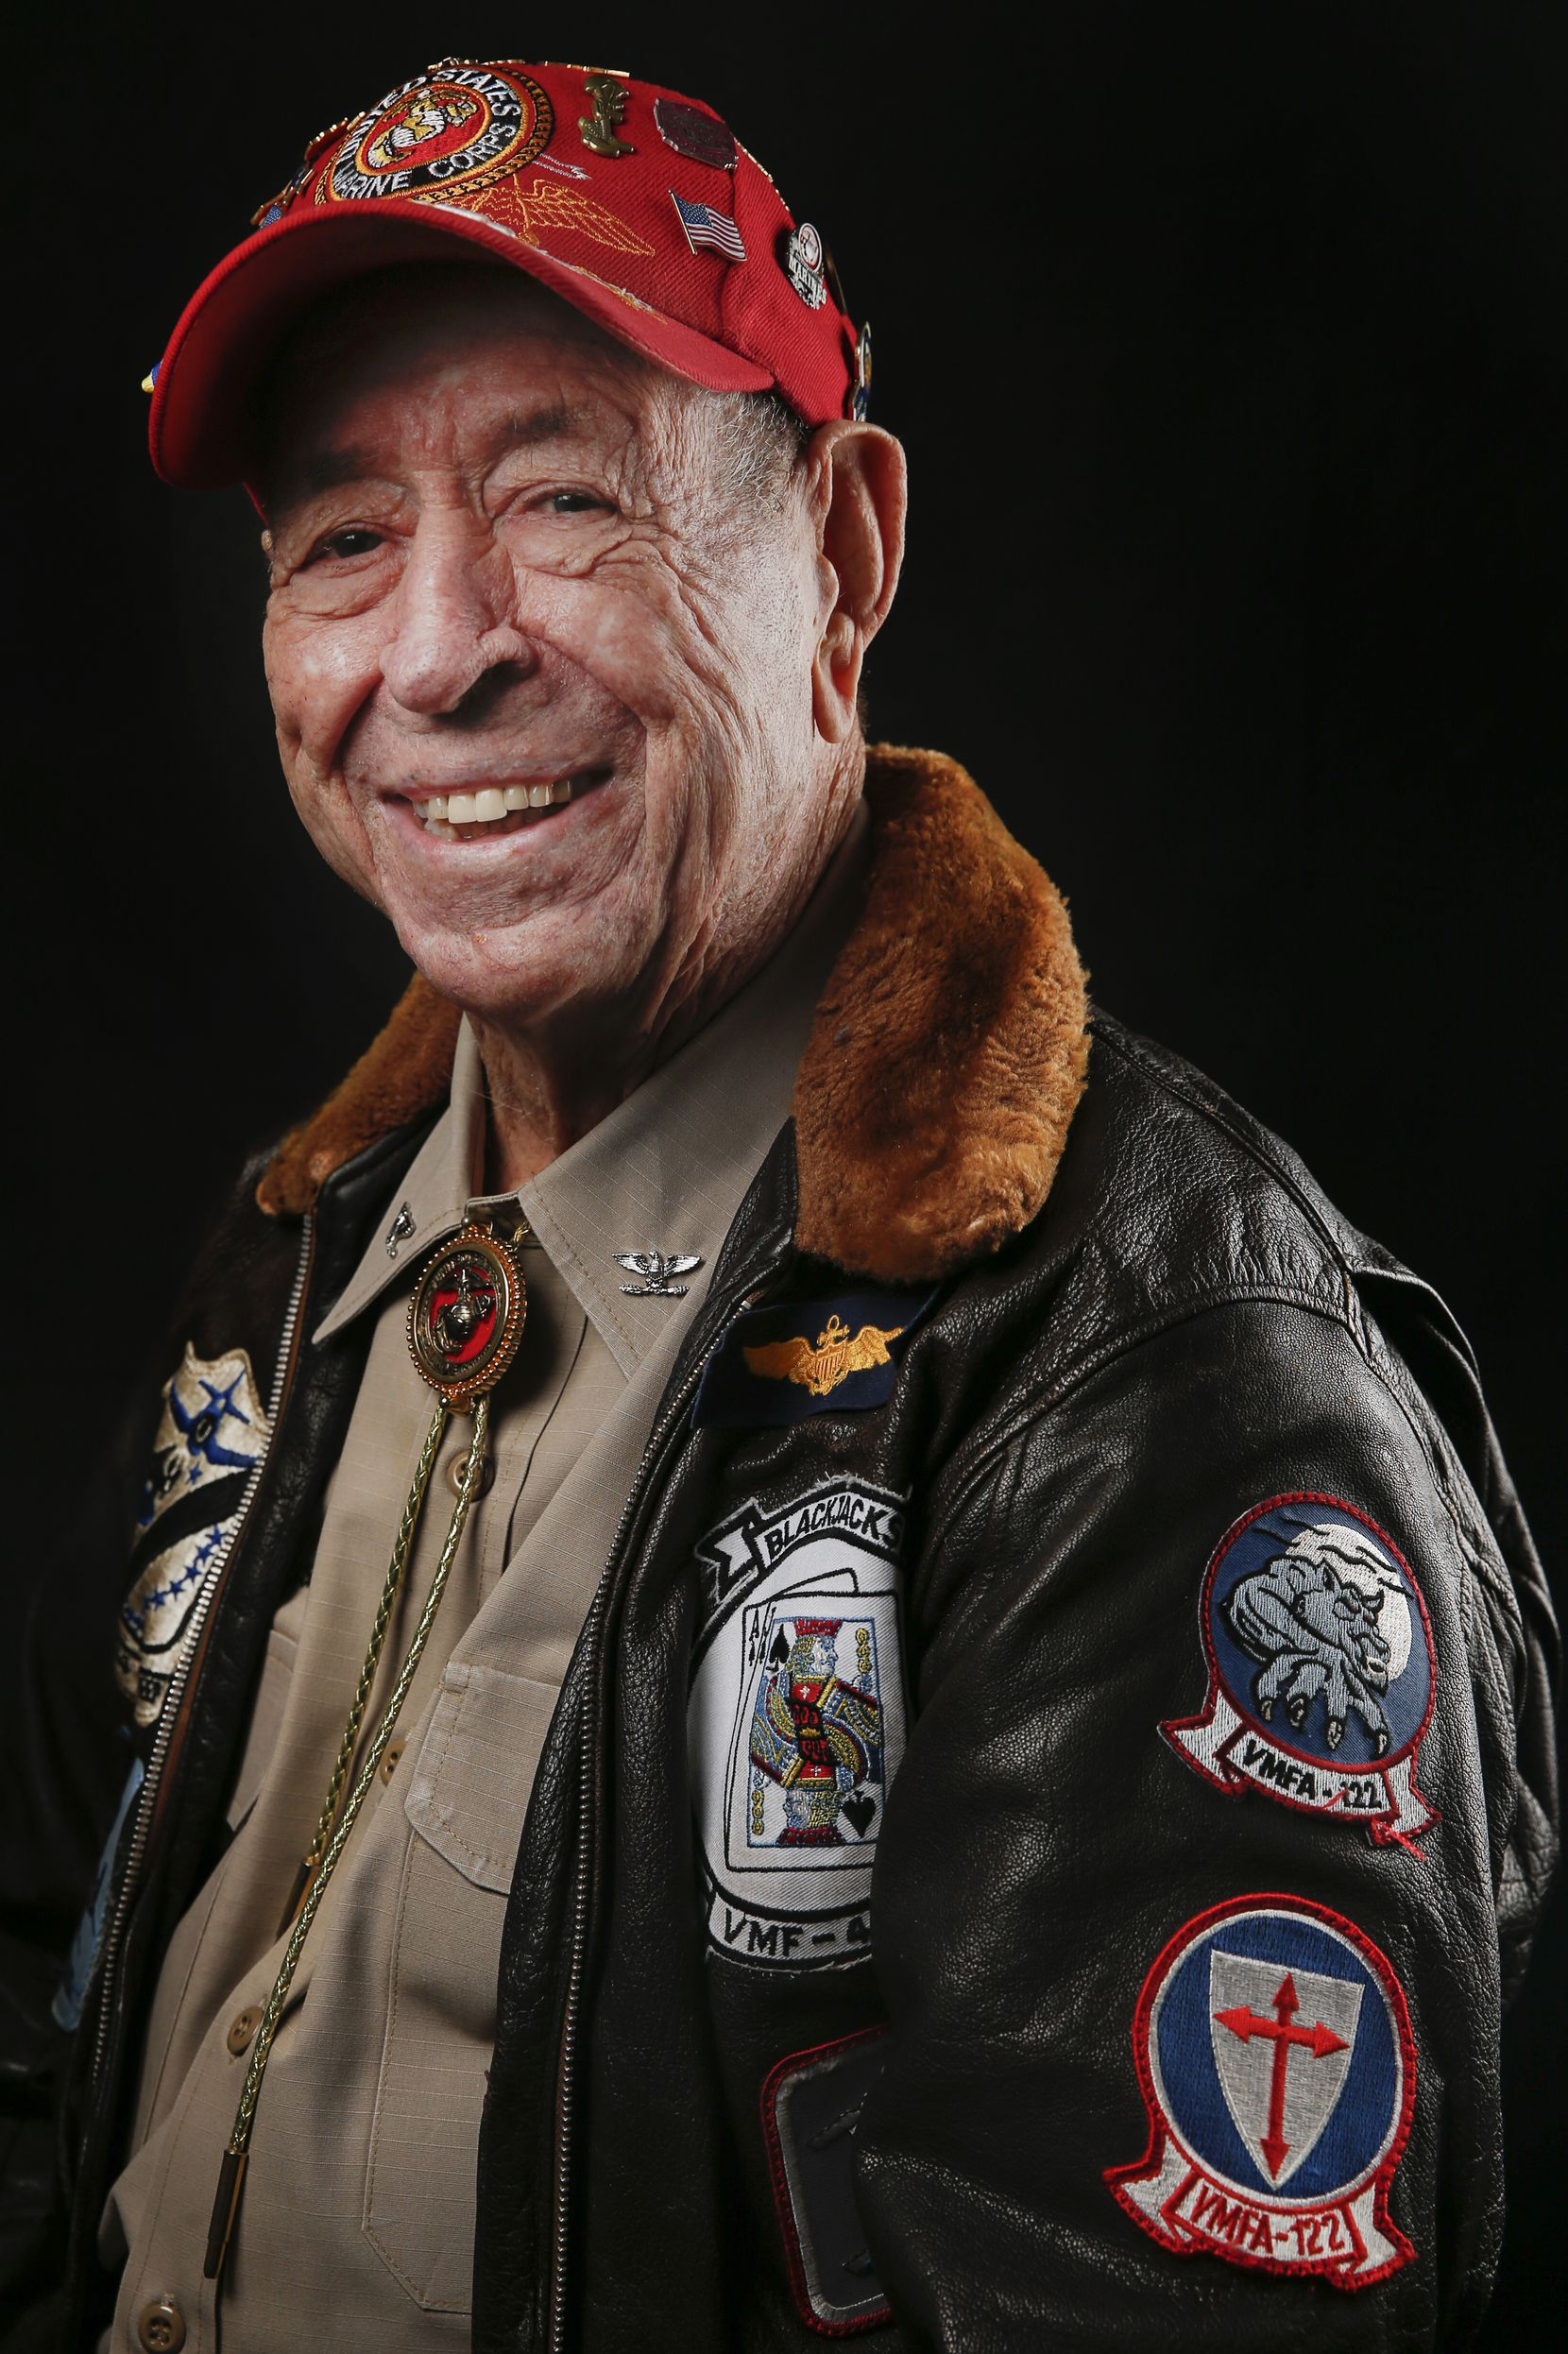 Joe McPhail, 98, of Houston, a colonel who served as a fighter pilot in the Marines' World War II VMF-323 Death Rattlers, is photographed during the Wings Over Dallas Airshow on Saturday, Oct. 26, 2019 in Dallas.